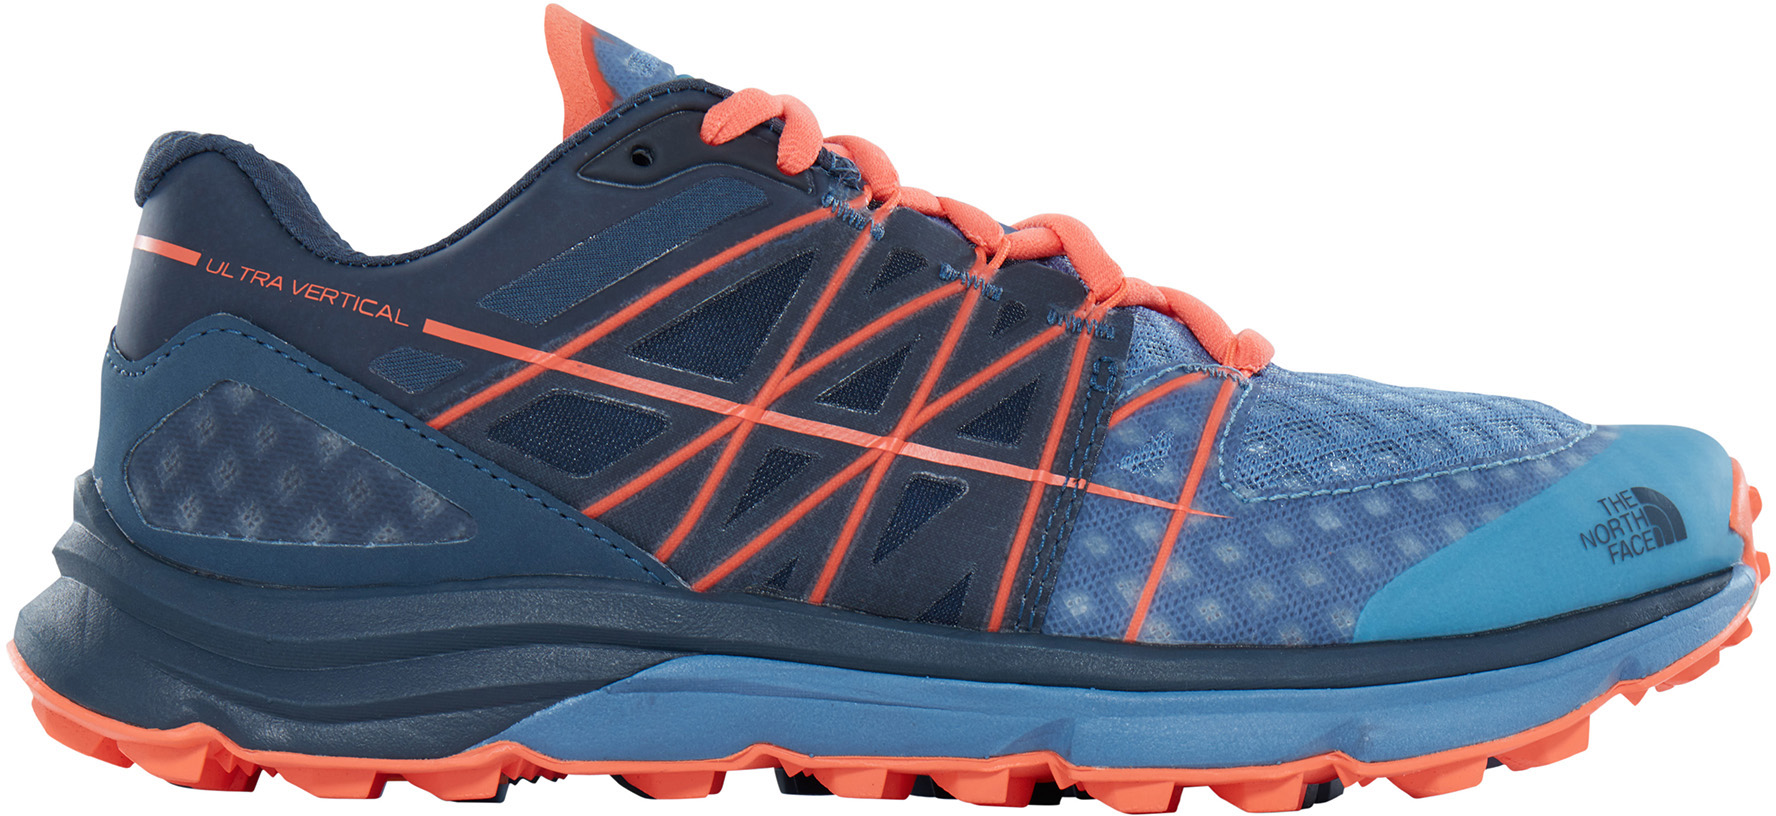 Ultra Vertical Shoes | Trail Shoes